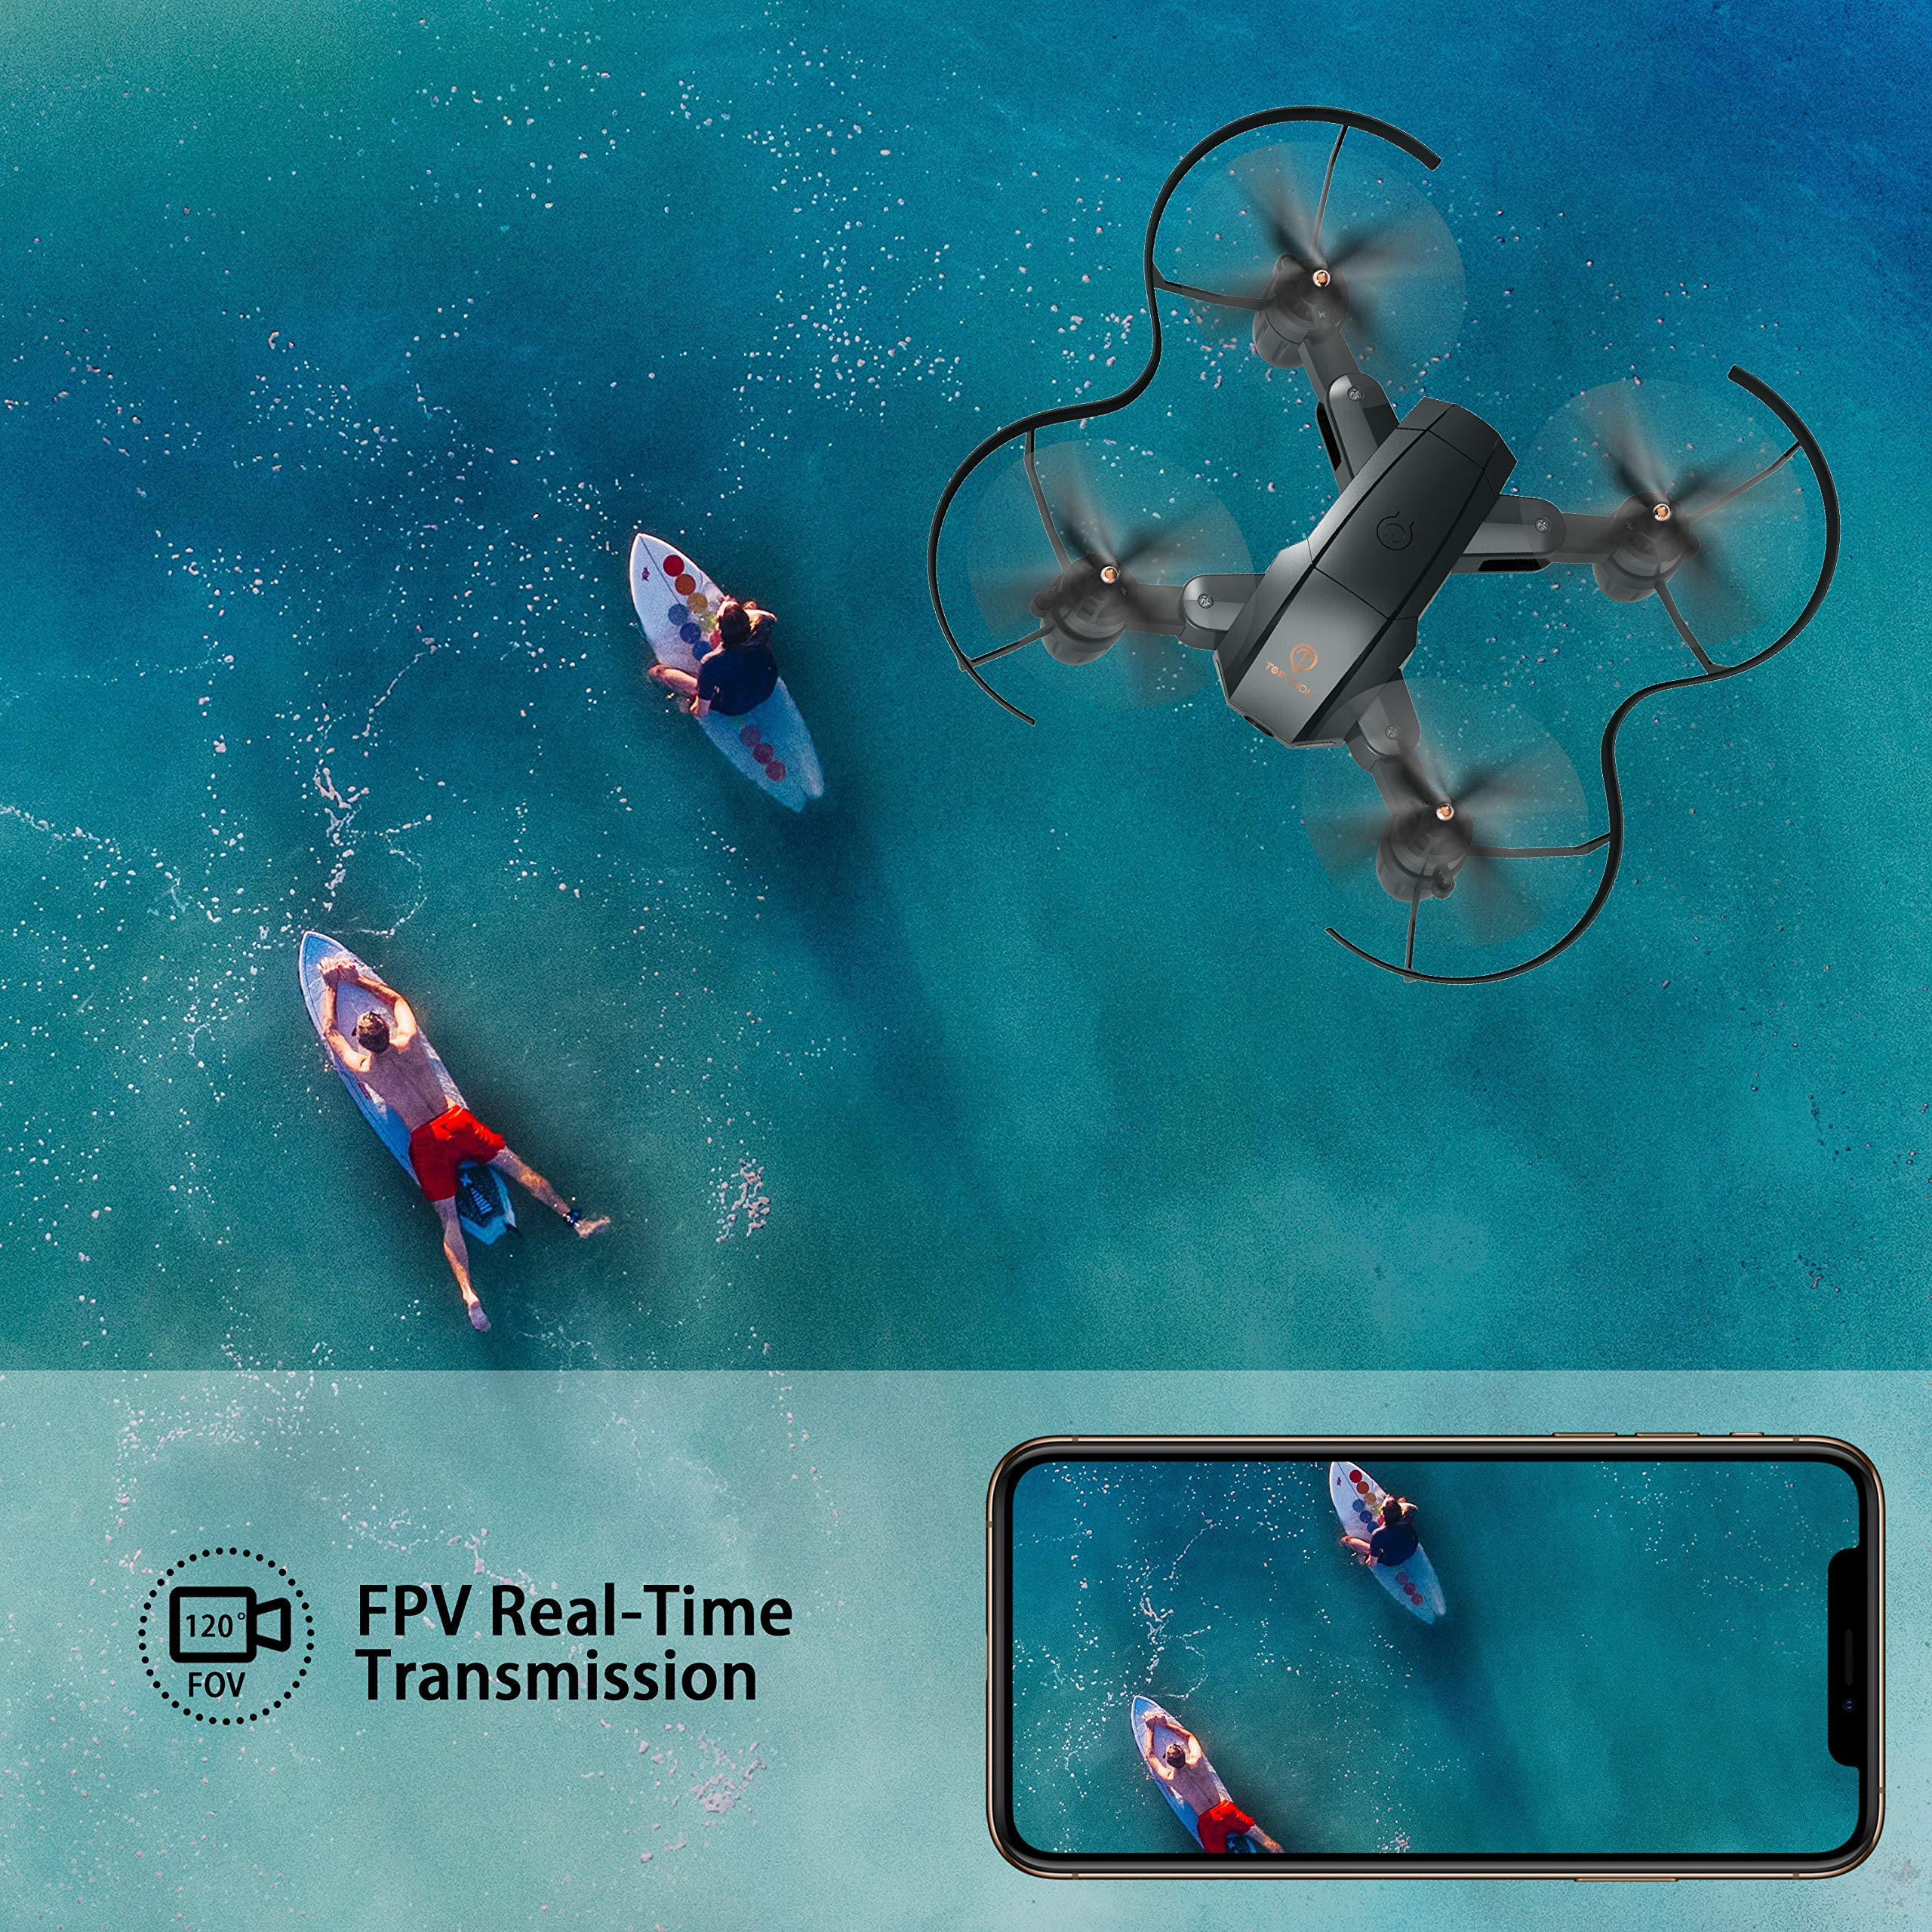 Drone with Camera, TOPVISION Foldable Quadcopter RC Drone with WiFi FPV HD Camera Live Video, Altitude Hold, One Key Start, APP Control, Black by T TOPVISION (Image #3)